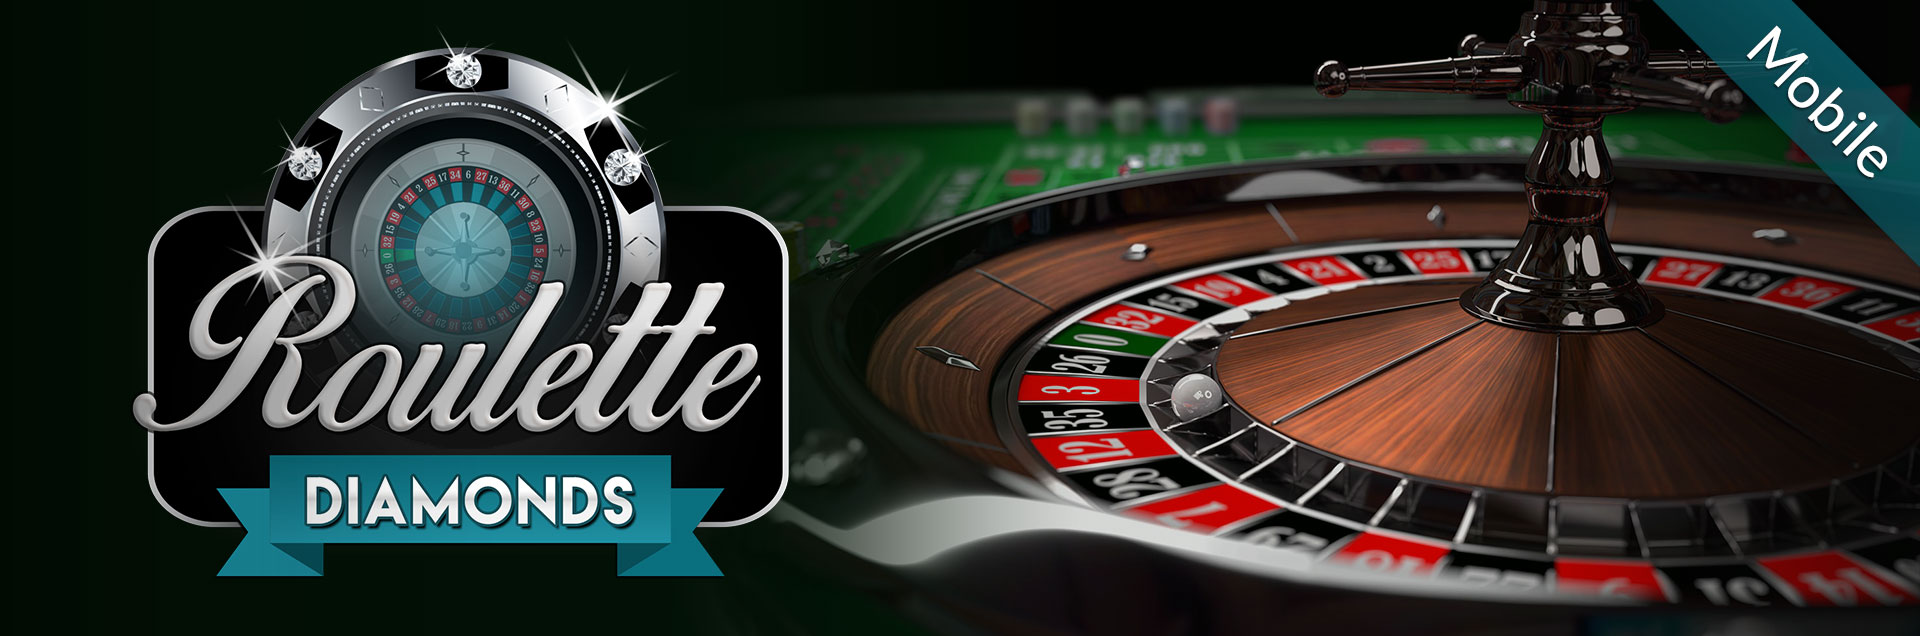 Roulette Diamonds mobile logo